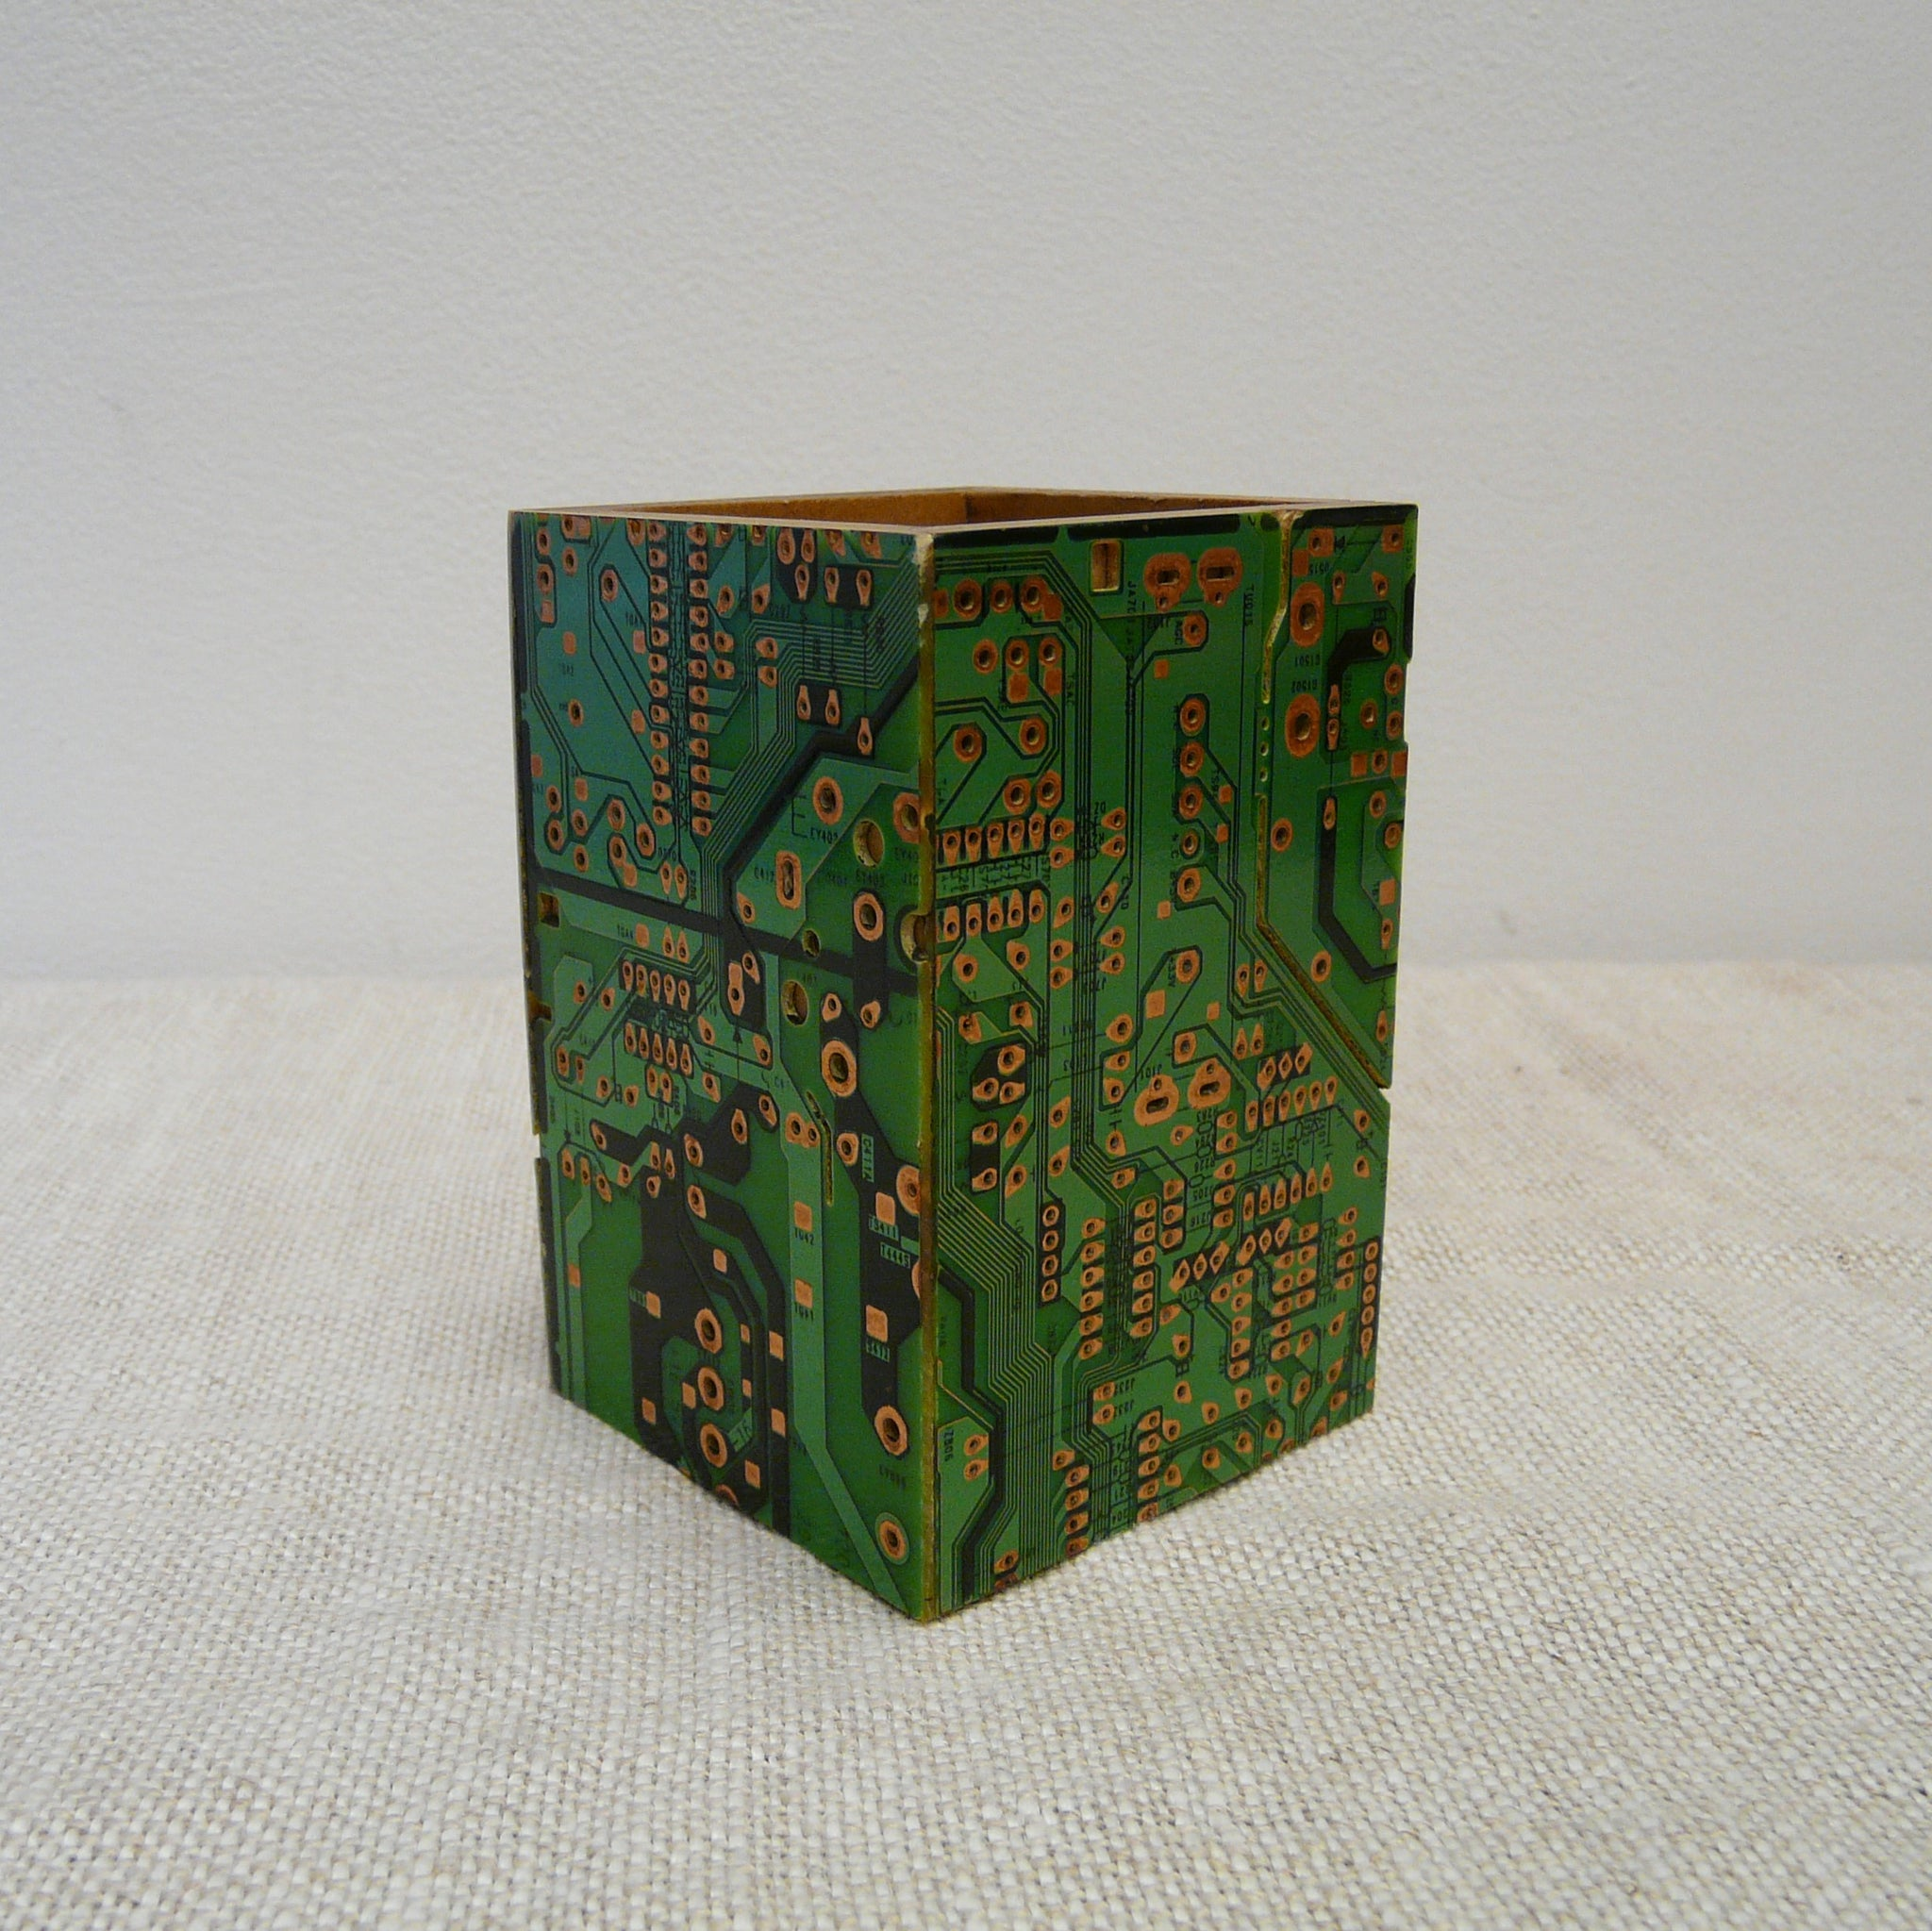 P1110143-Fair-Trade-Upcycled-Circuit-board-Pen-pot